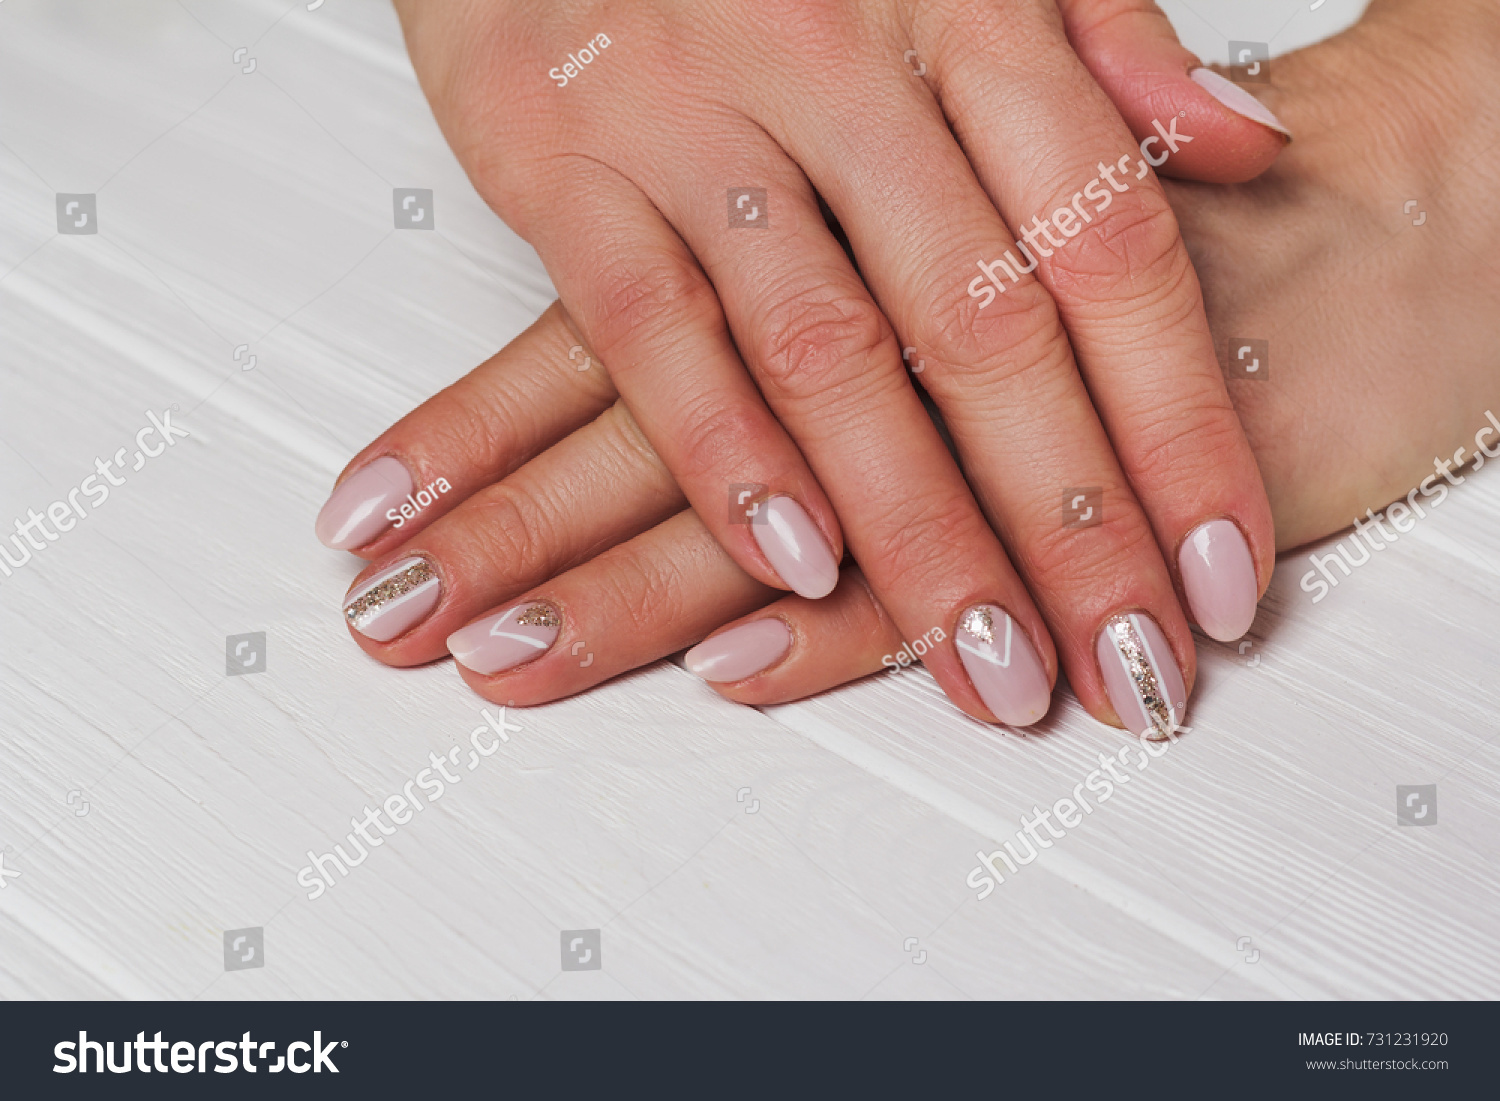 images?q=tbn:ANd9GcQh_l3eQ5xwiPy07kGEXjmjgmBKBRB7H2mRxCGhv1tFWg5c_mWT Nail Art With Lines @bookmarkpages.info